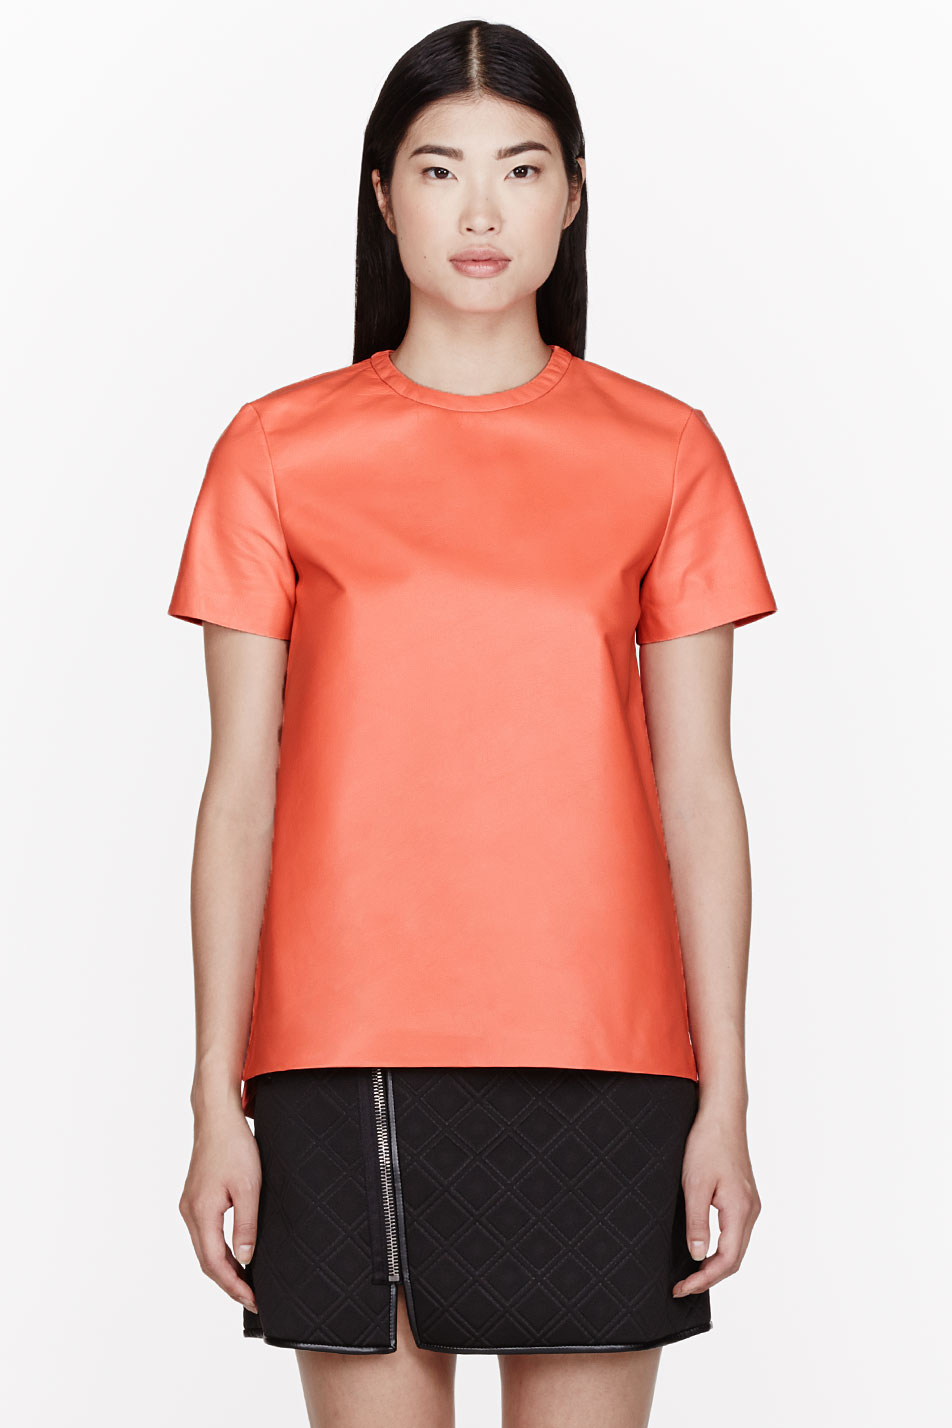 proenza schouler coral orange leather tissue t_shirt